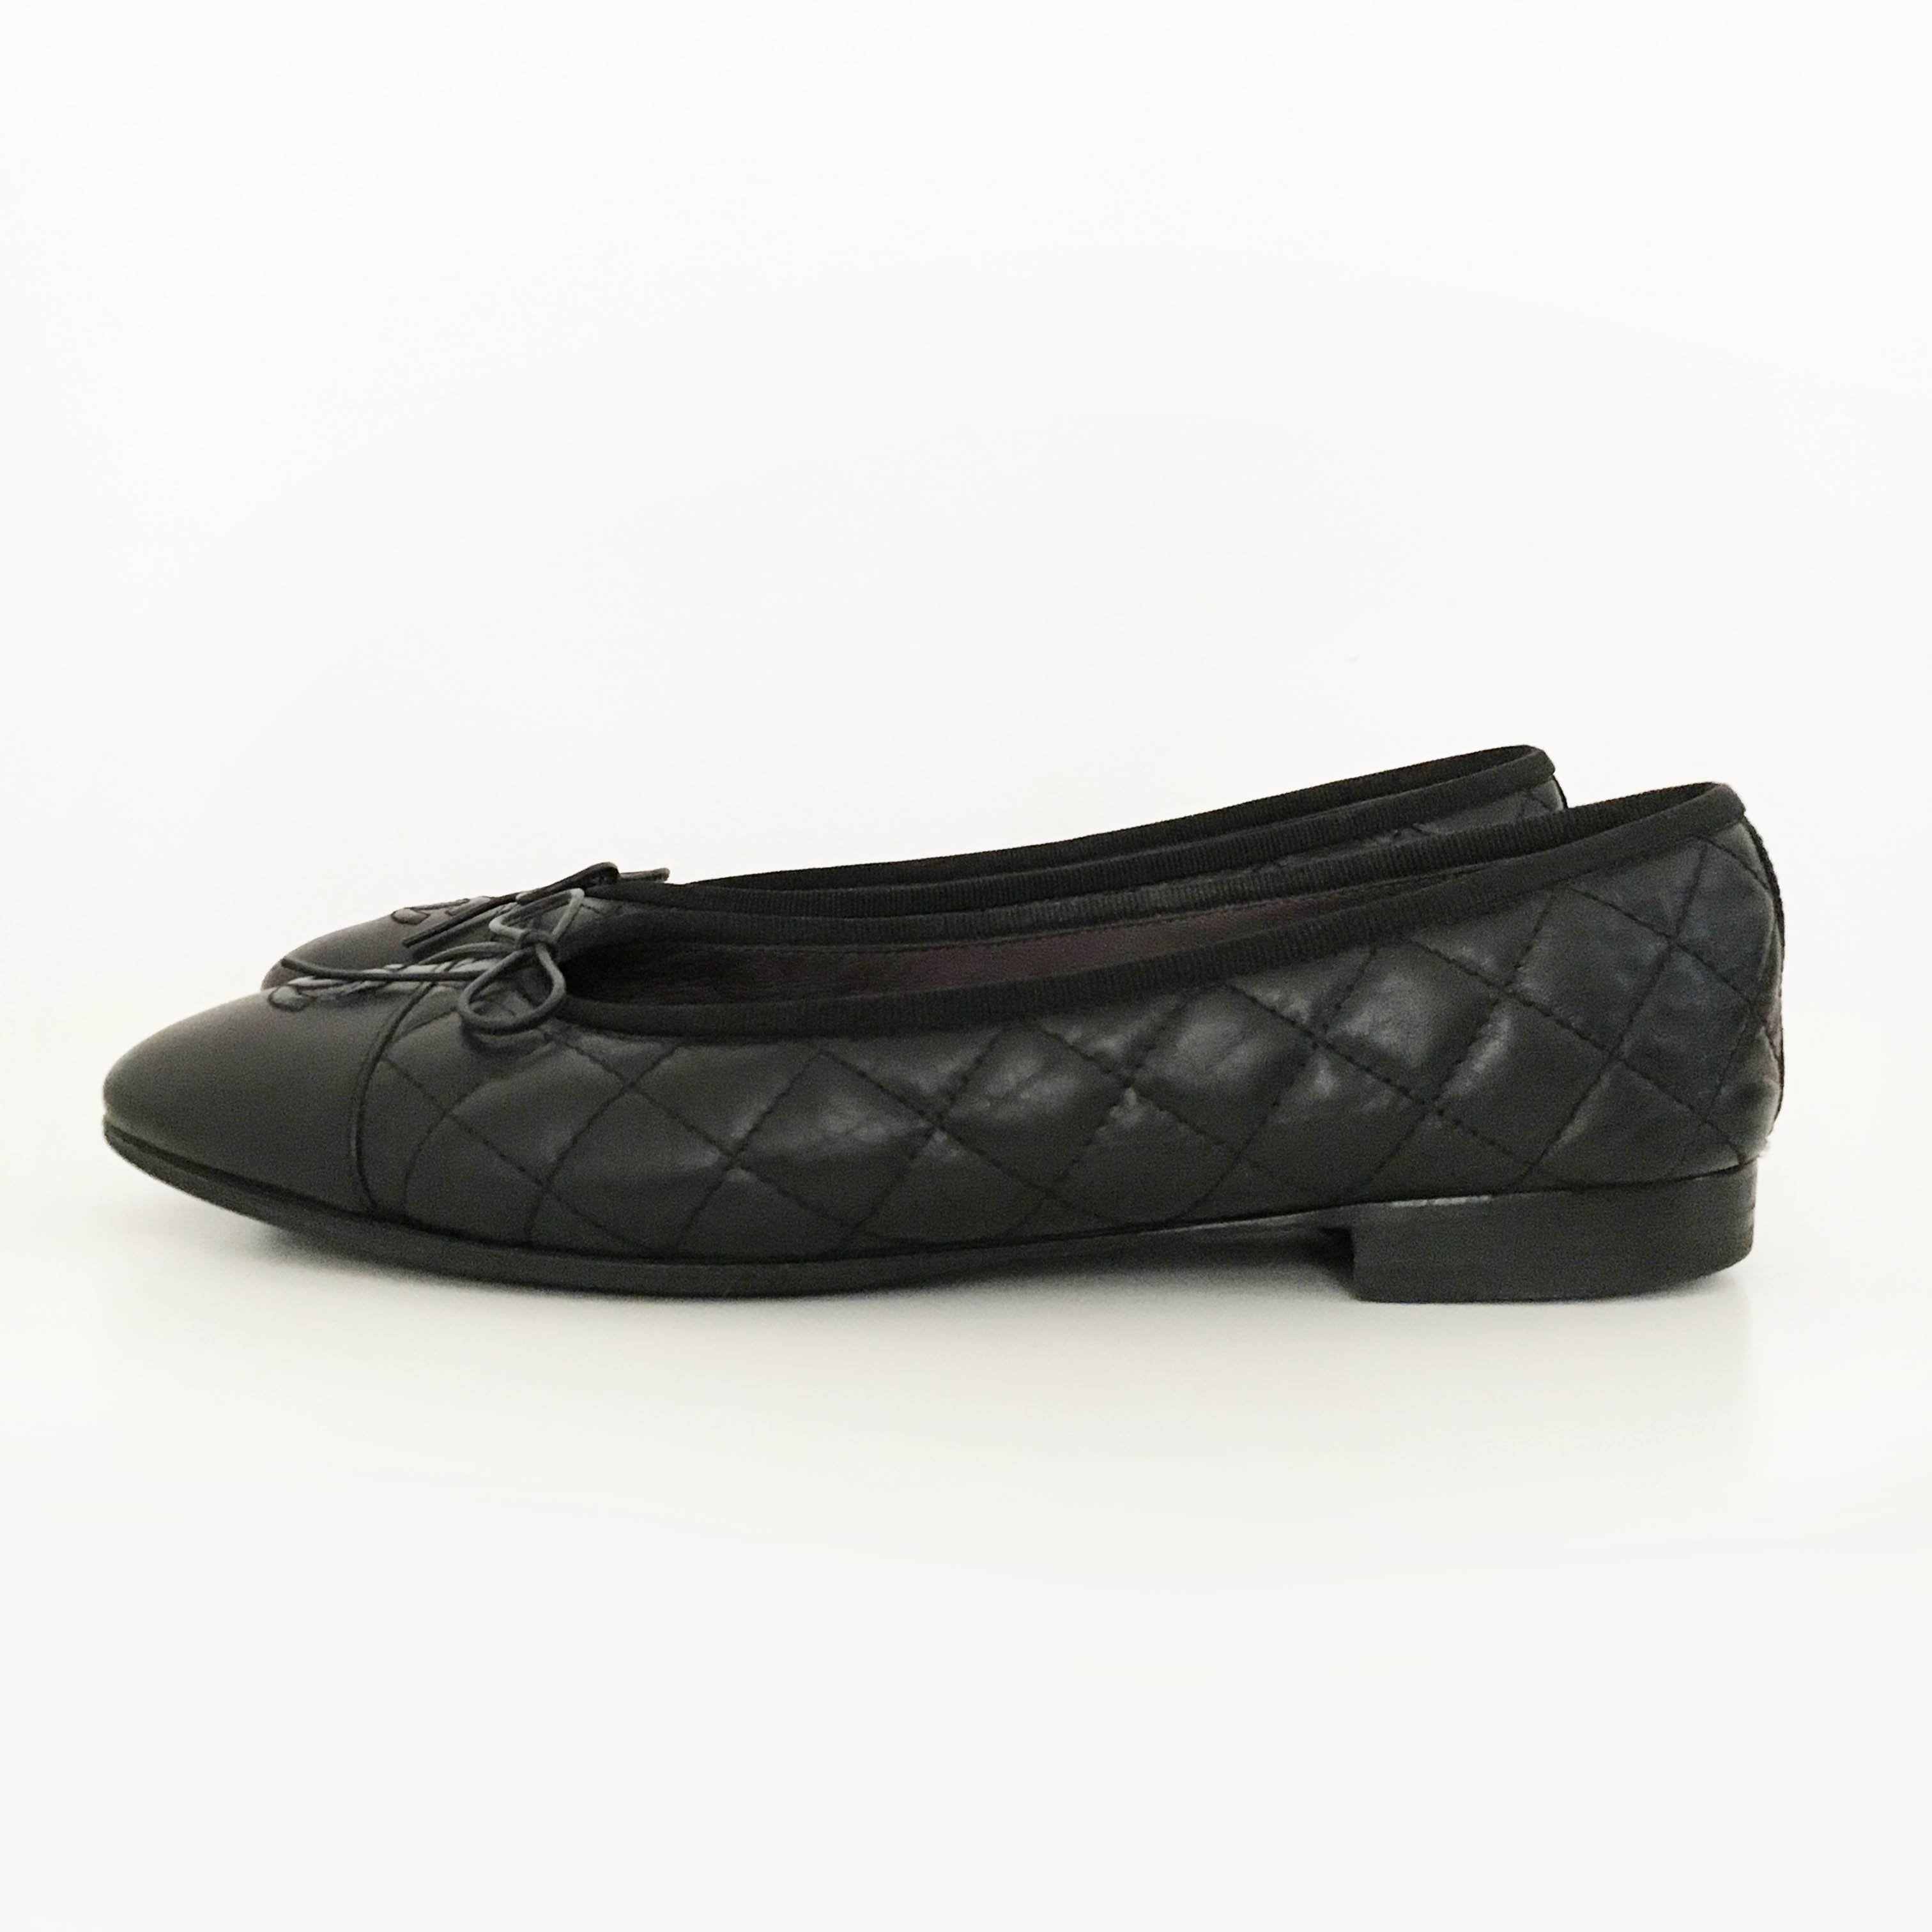 Chanel Ballerina in Black Quilted Leather